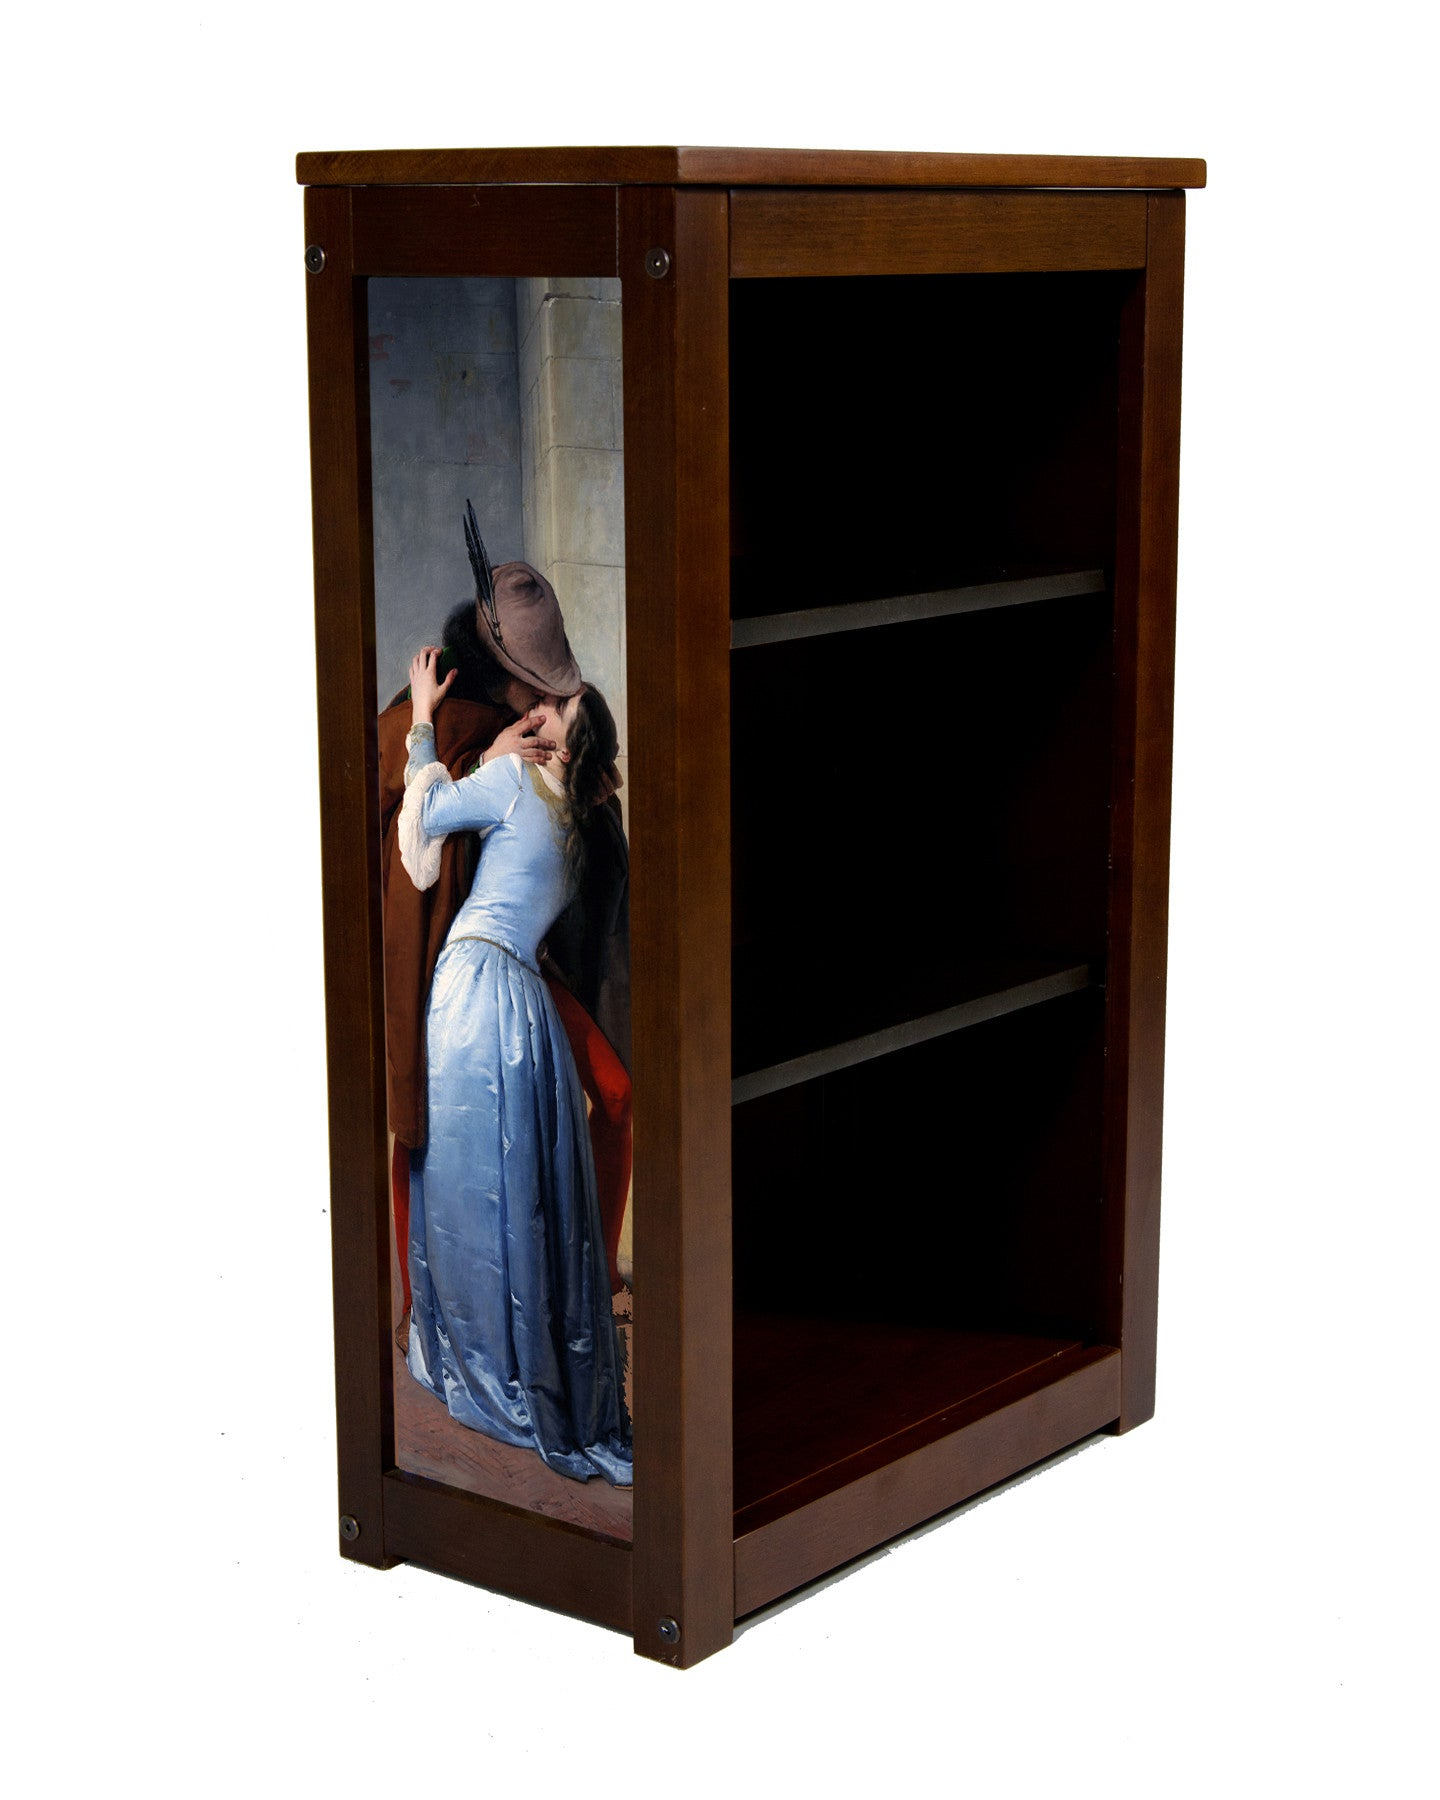 Book Cabinet called The Kiss by Francesco Hayez